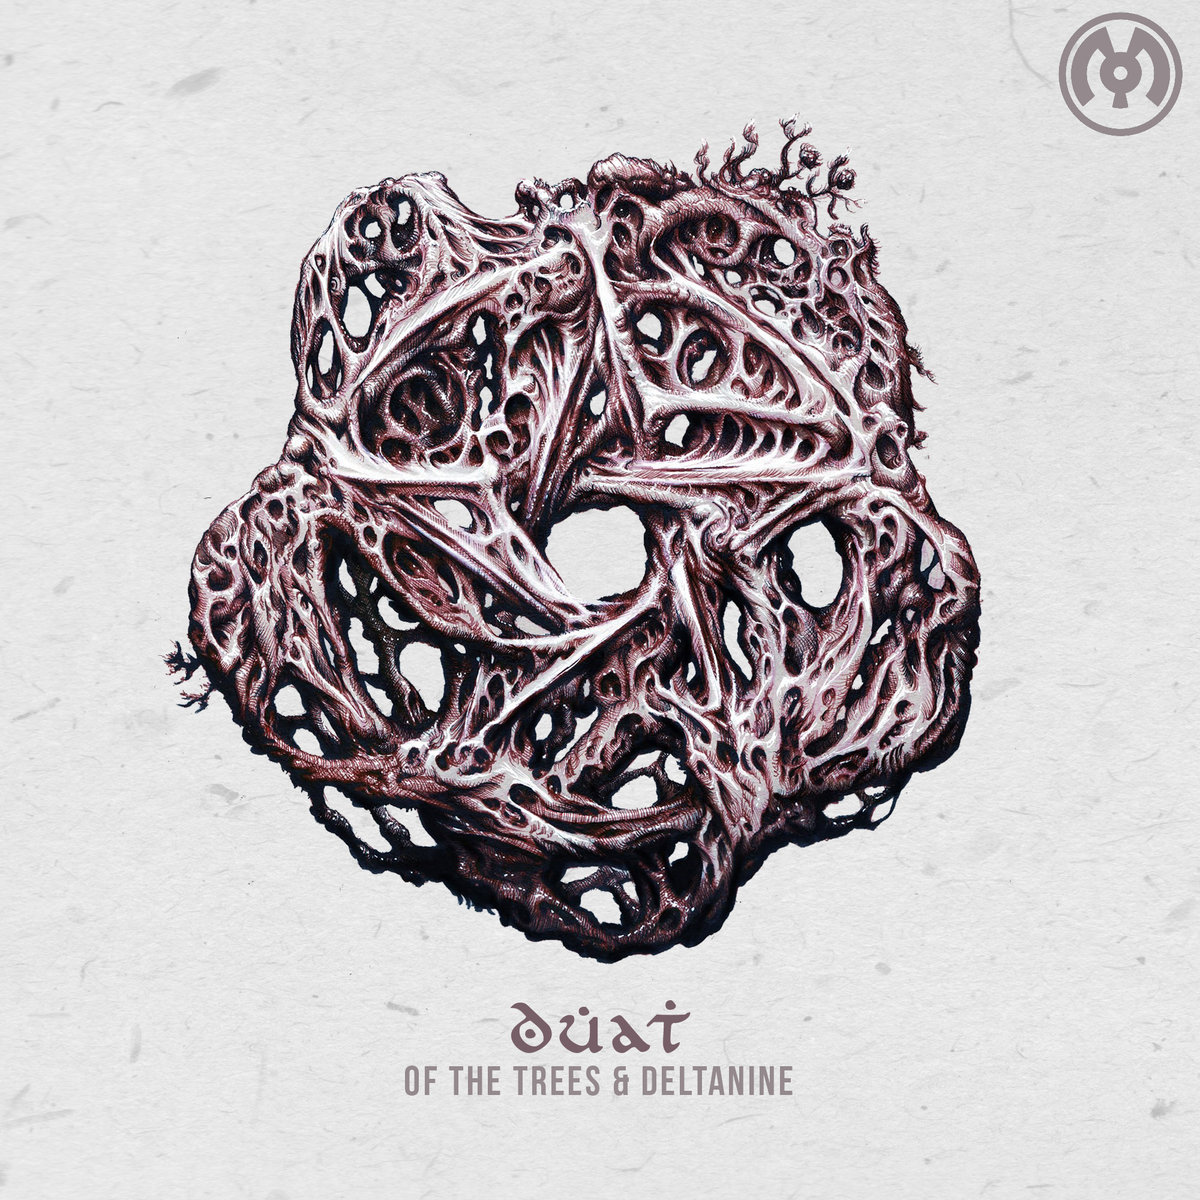 Of the Trees & DELTAnine - Book of the Dead @ 'Duat' album (electronic, dubstep)